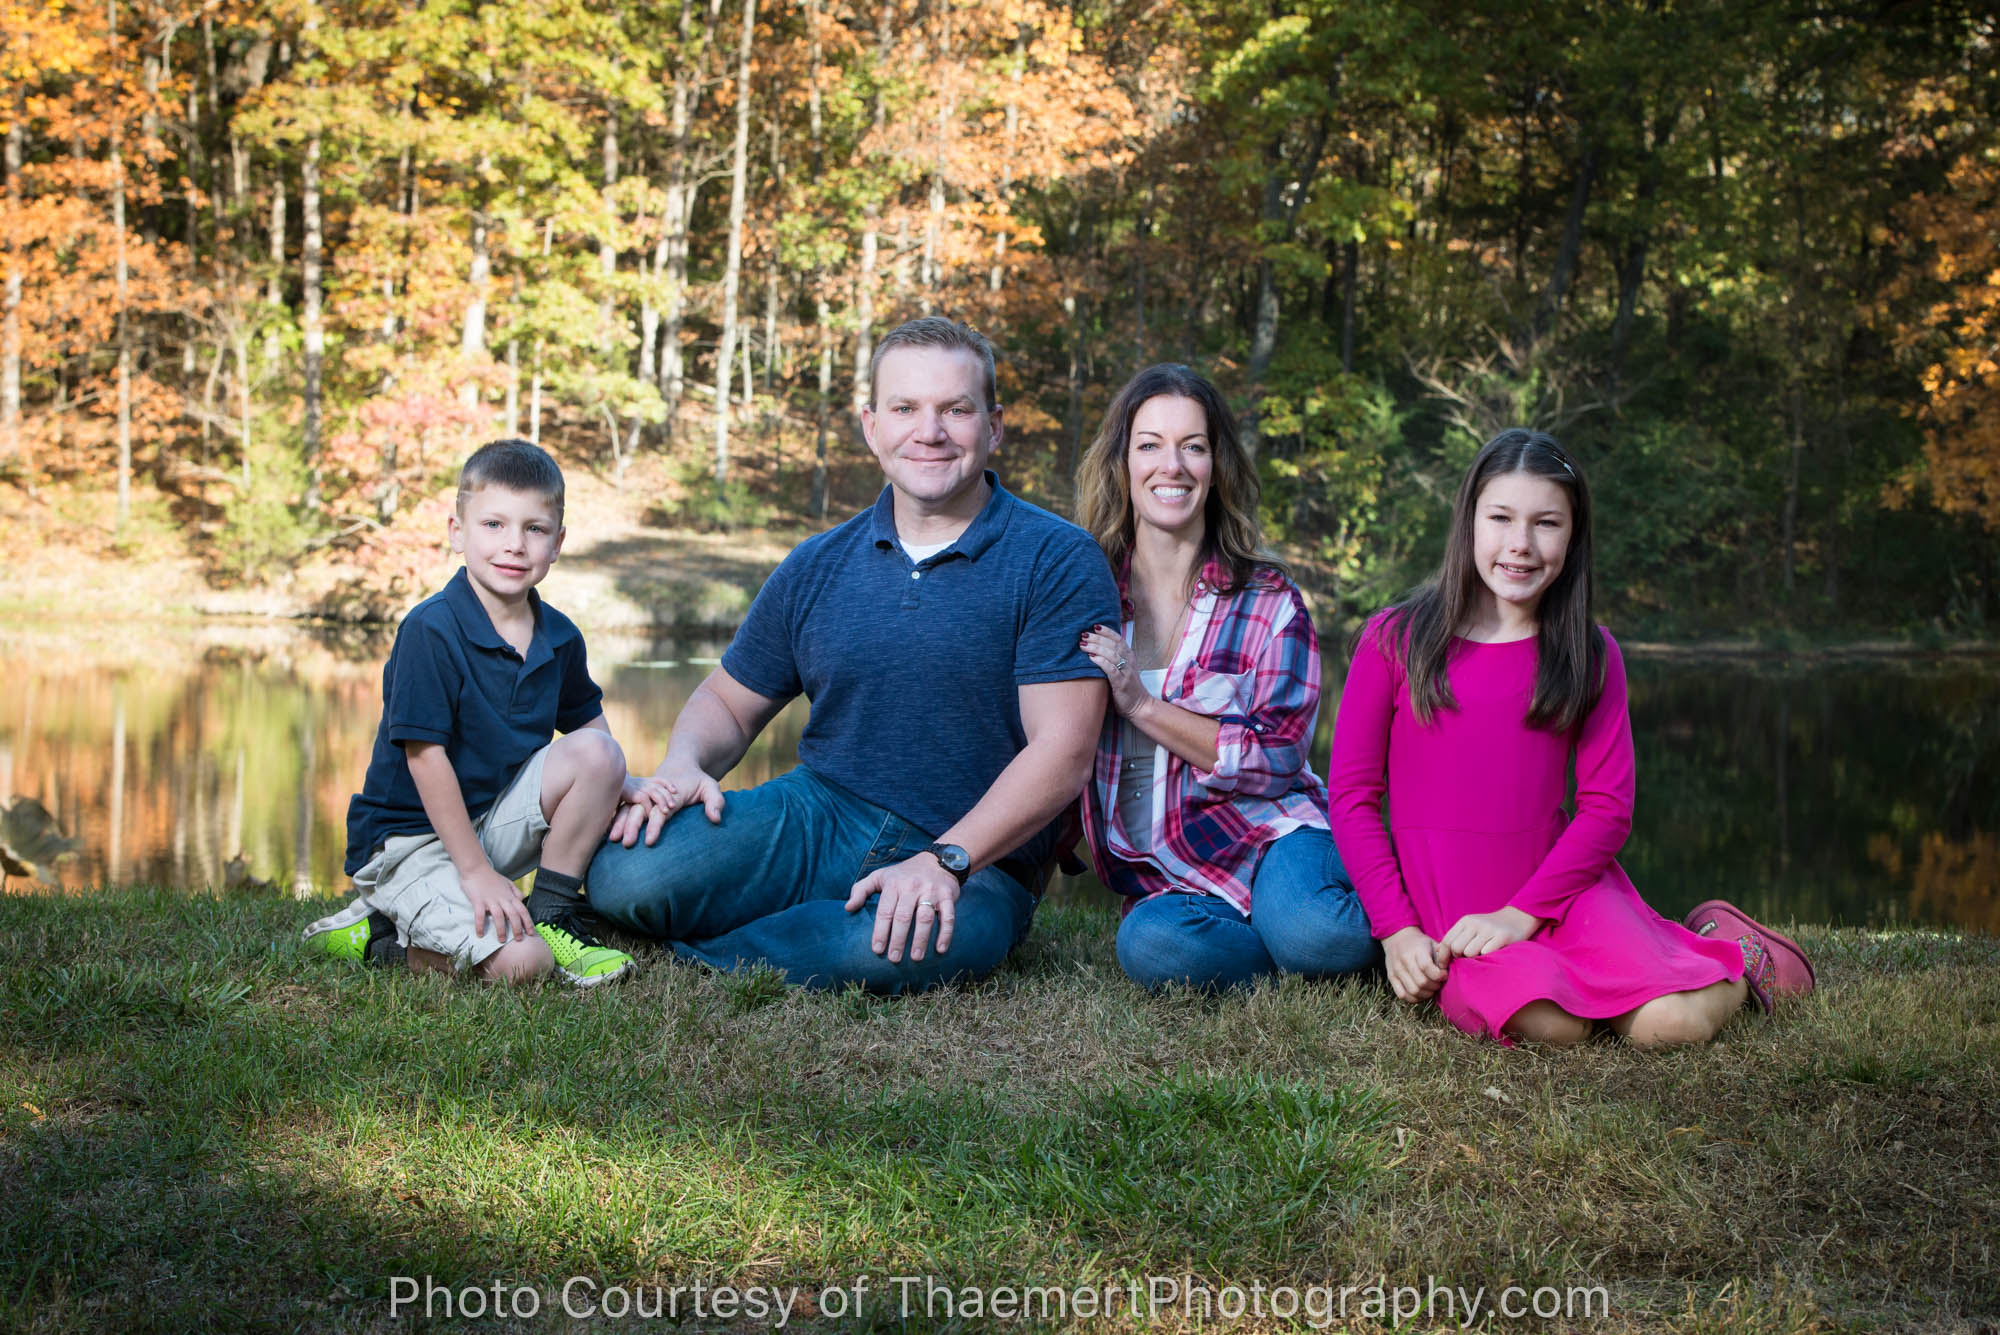 Beautiful Fall Family Portrait for Walls by K Thaemert Photography